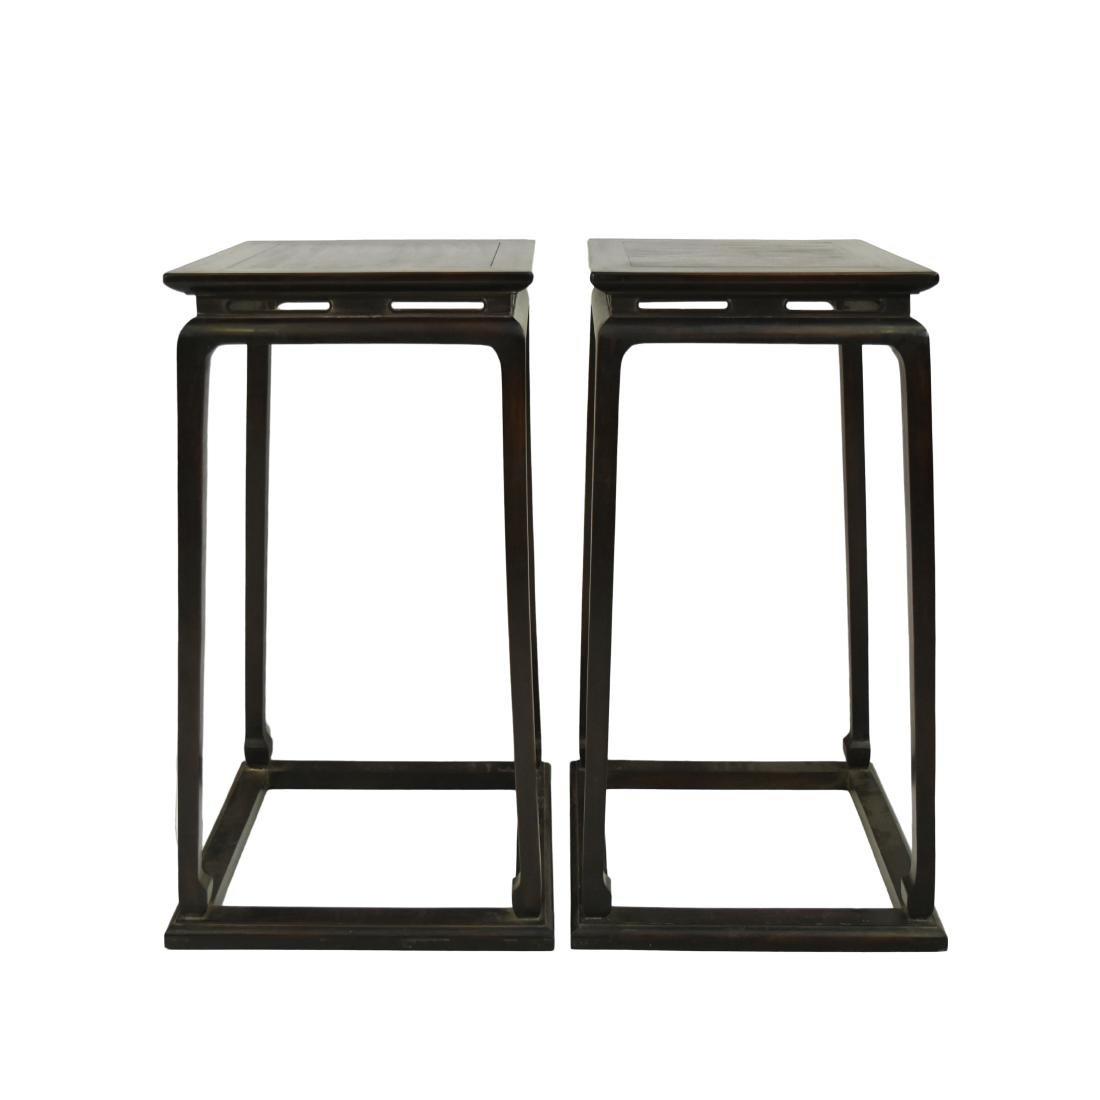 PAIR OF CHINESE ZITAN PLANT STANDS